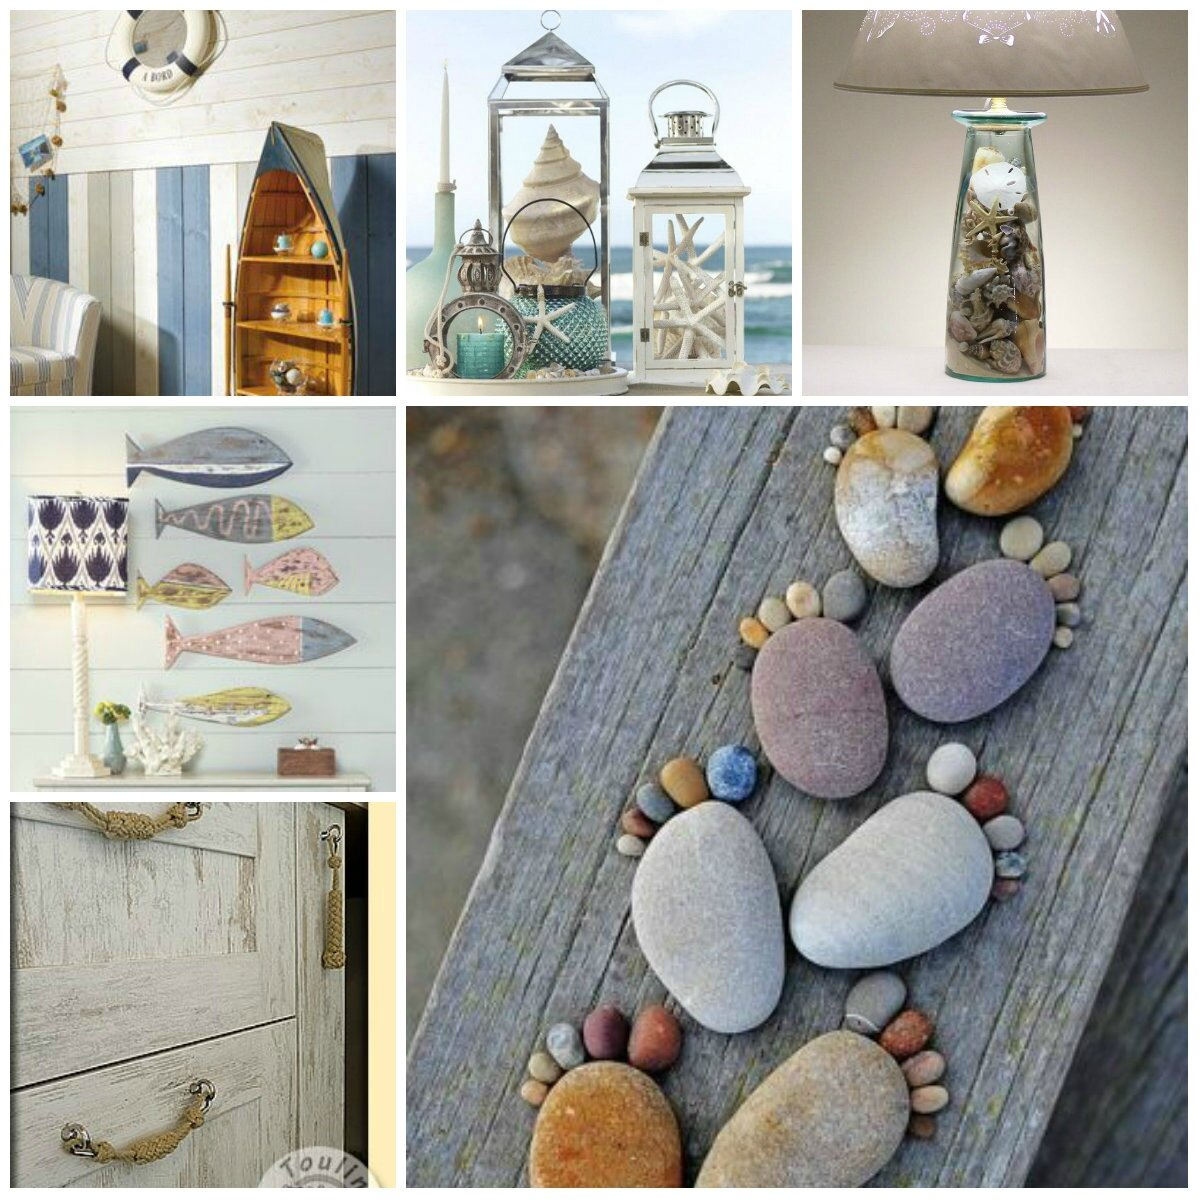 D coration maison theme mer for Theme deco maison